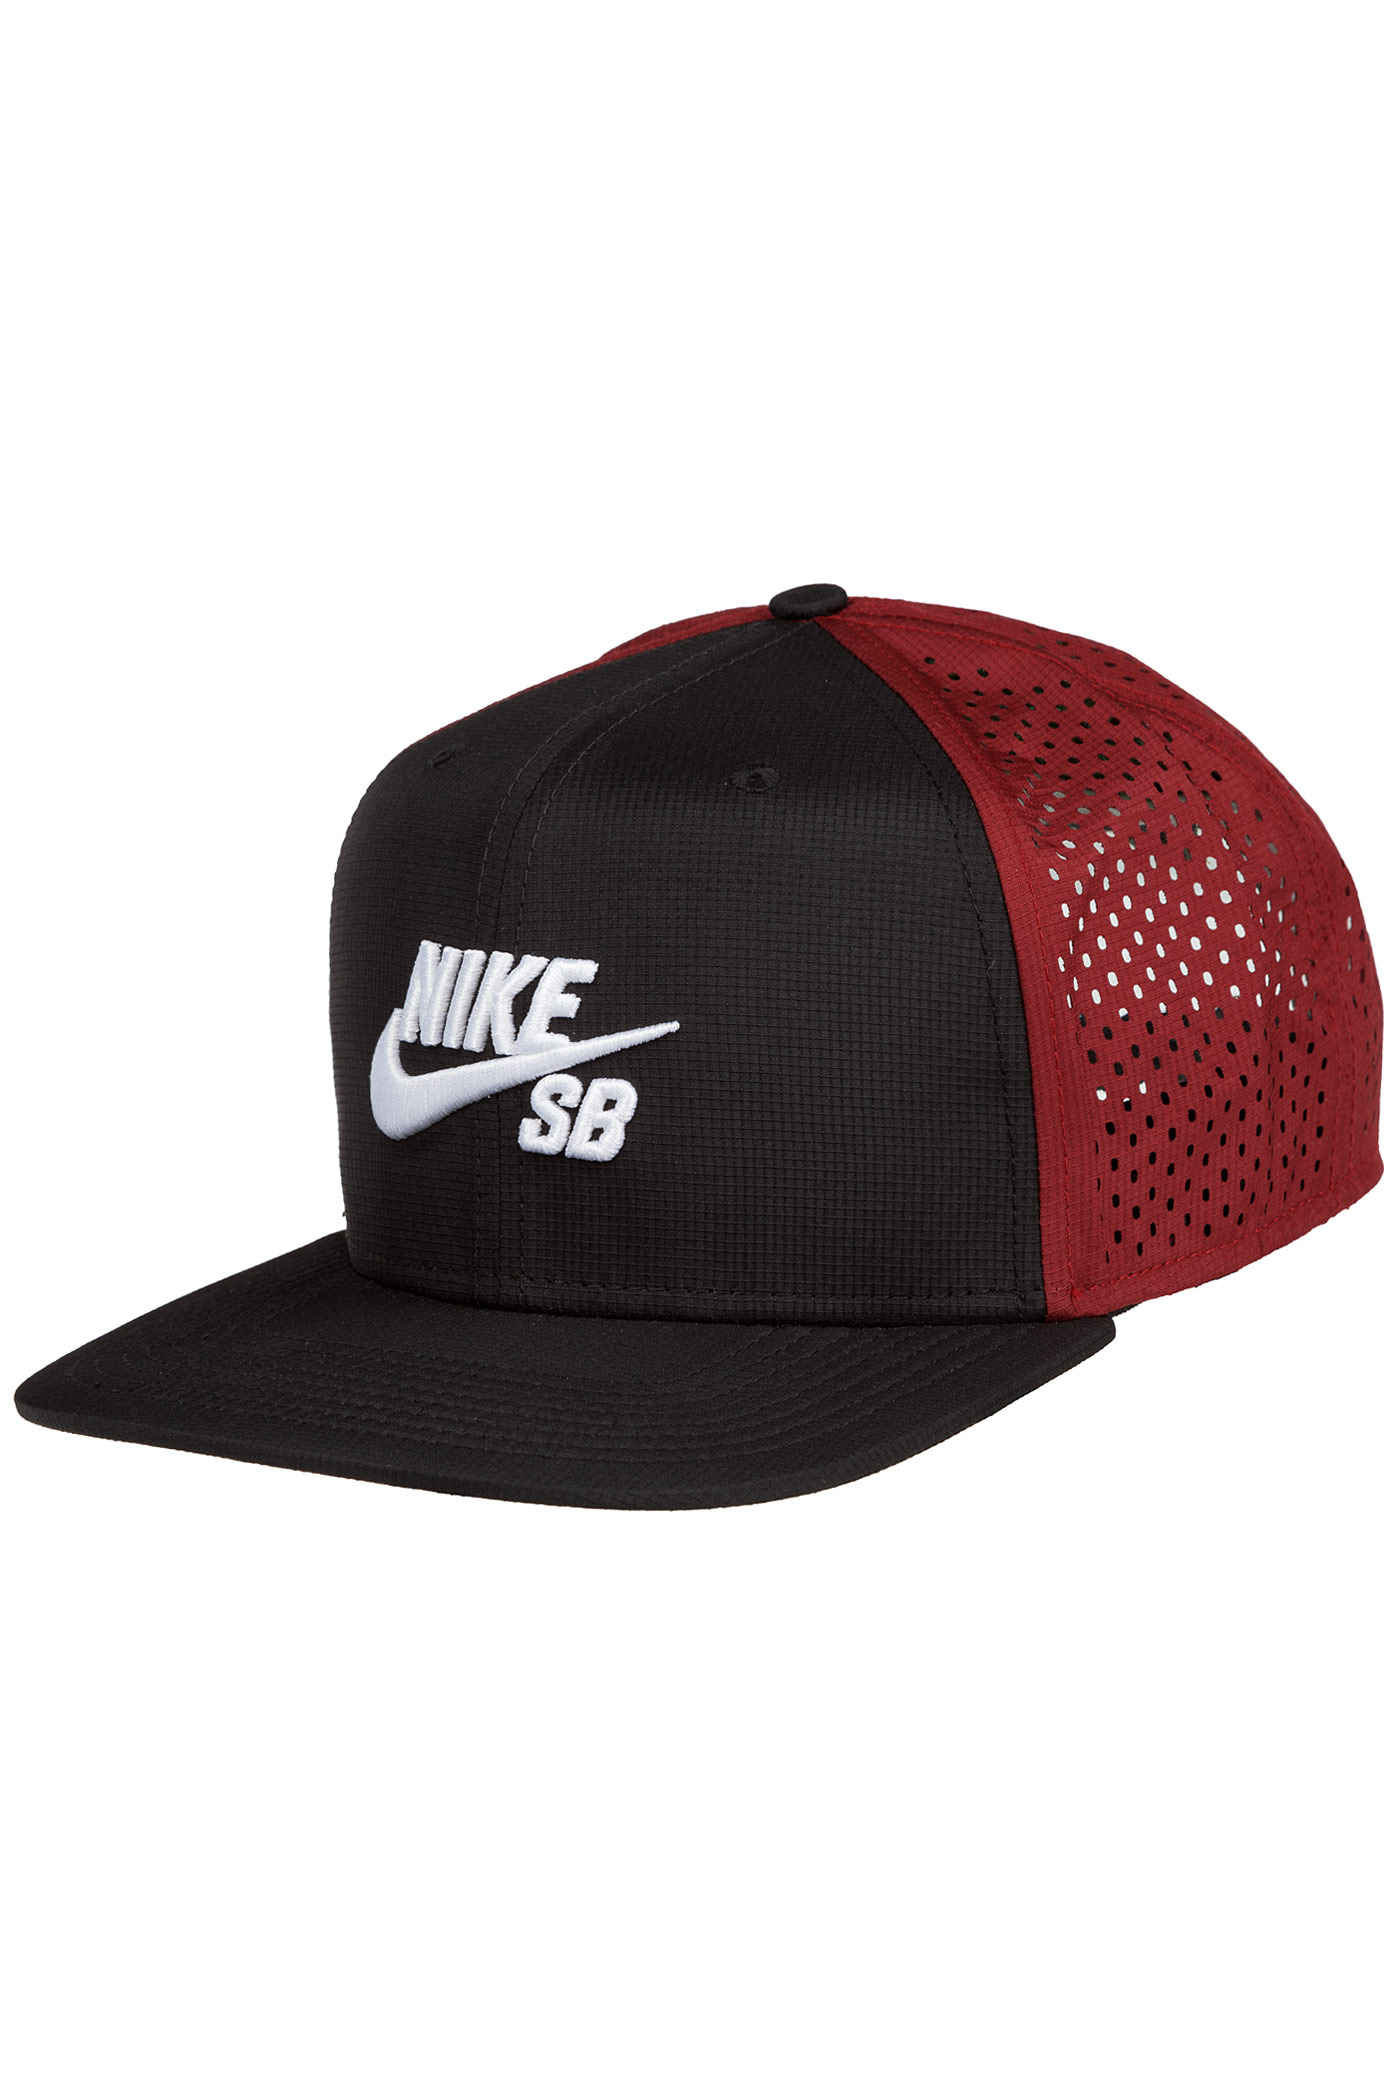 Nike SB Performance Trucker Cap (black team red) buy at skatedeluxe 2b083fa52dc3